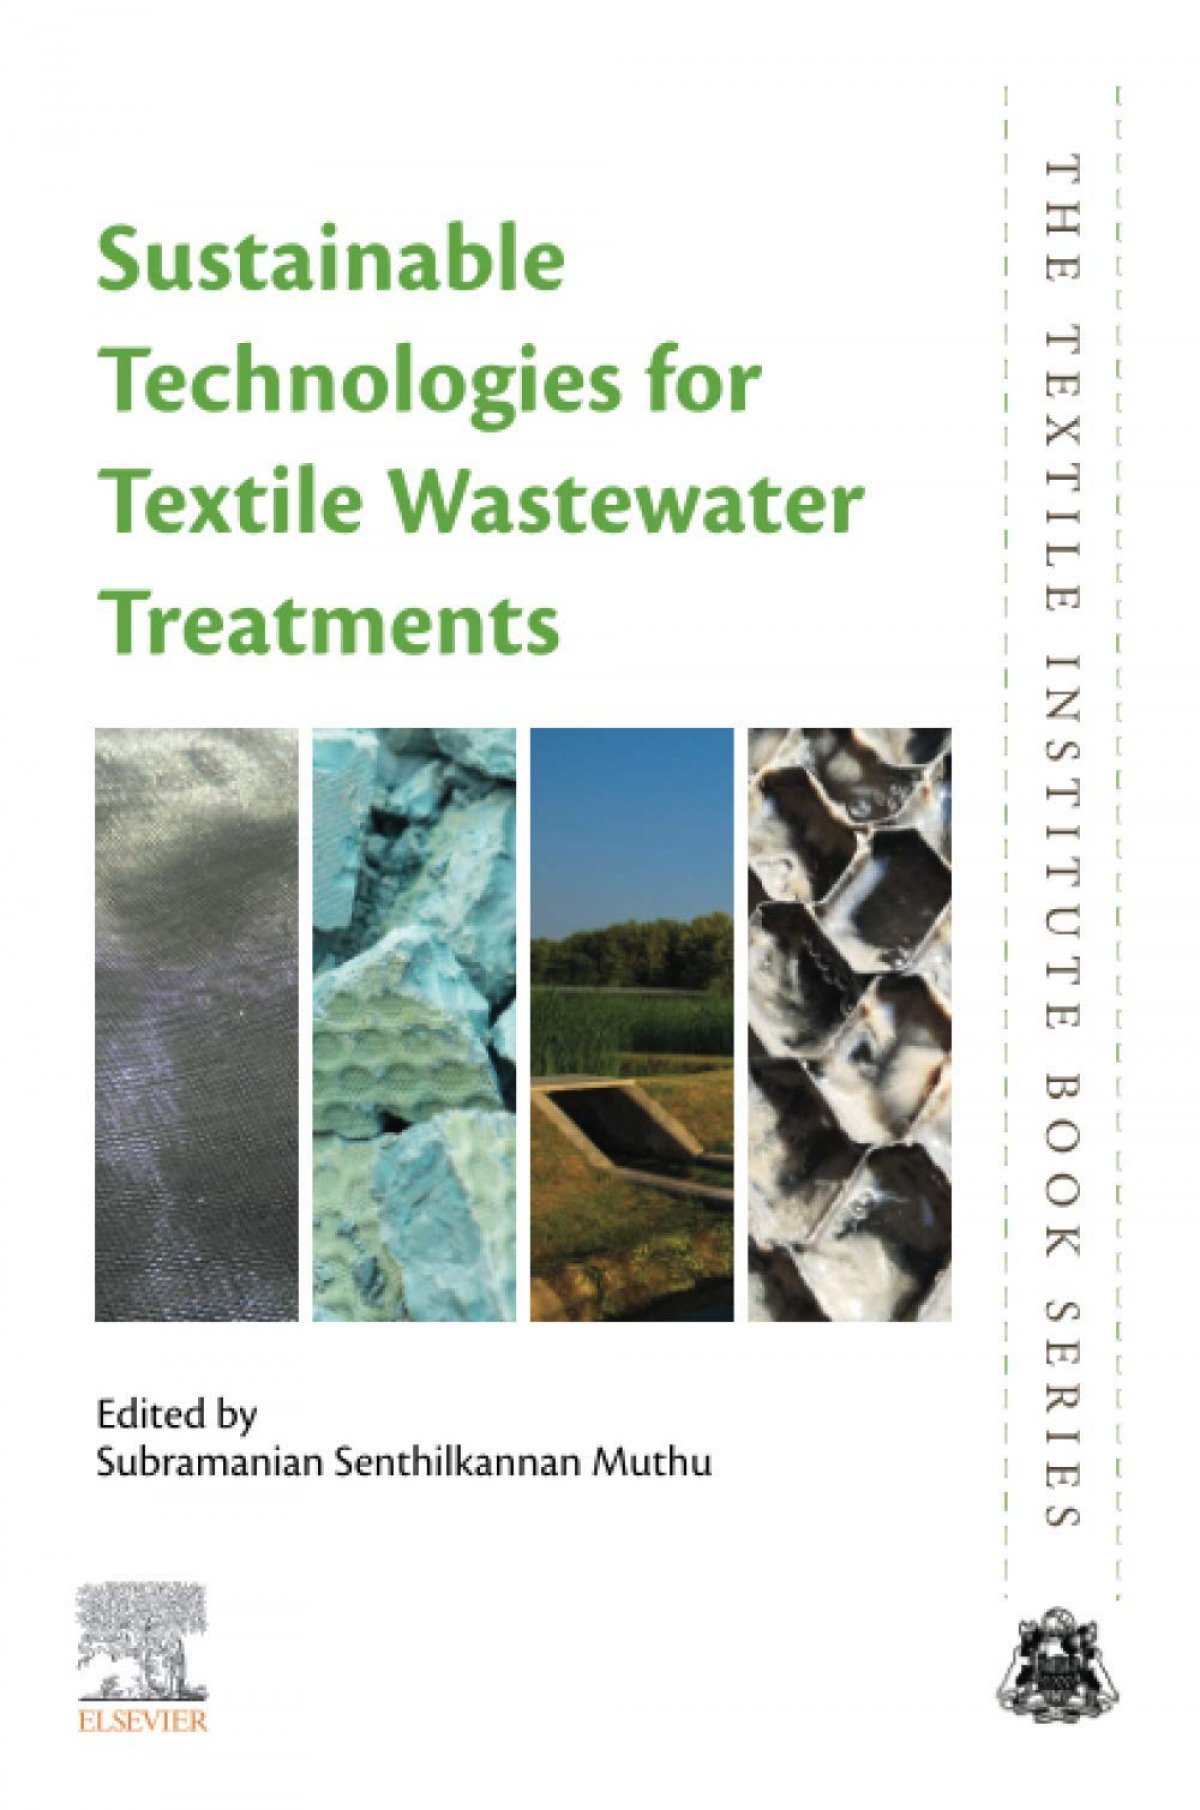 SUSTAINABLE TECHNOLOGIES TEXTILE WASTEWATER TREATMENTS